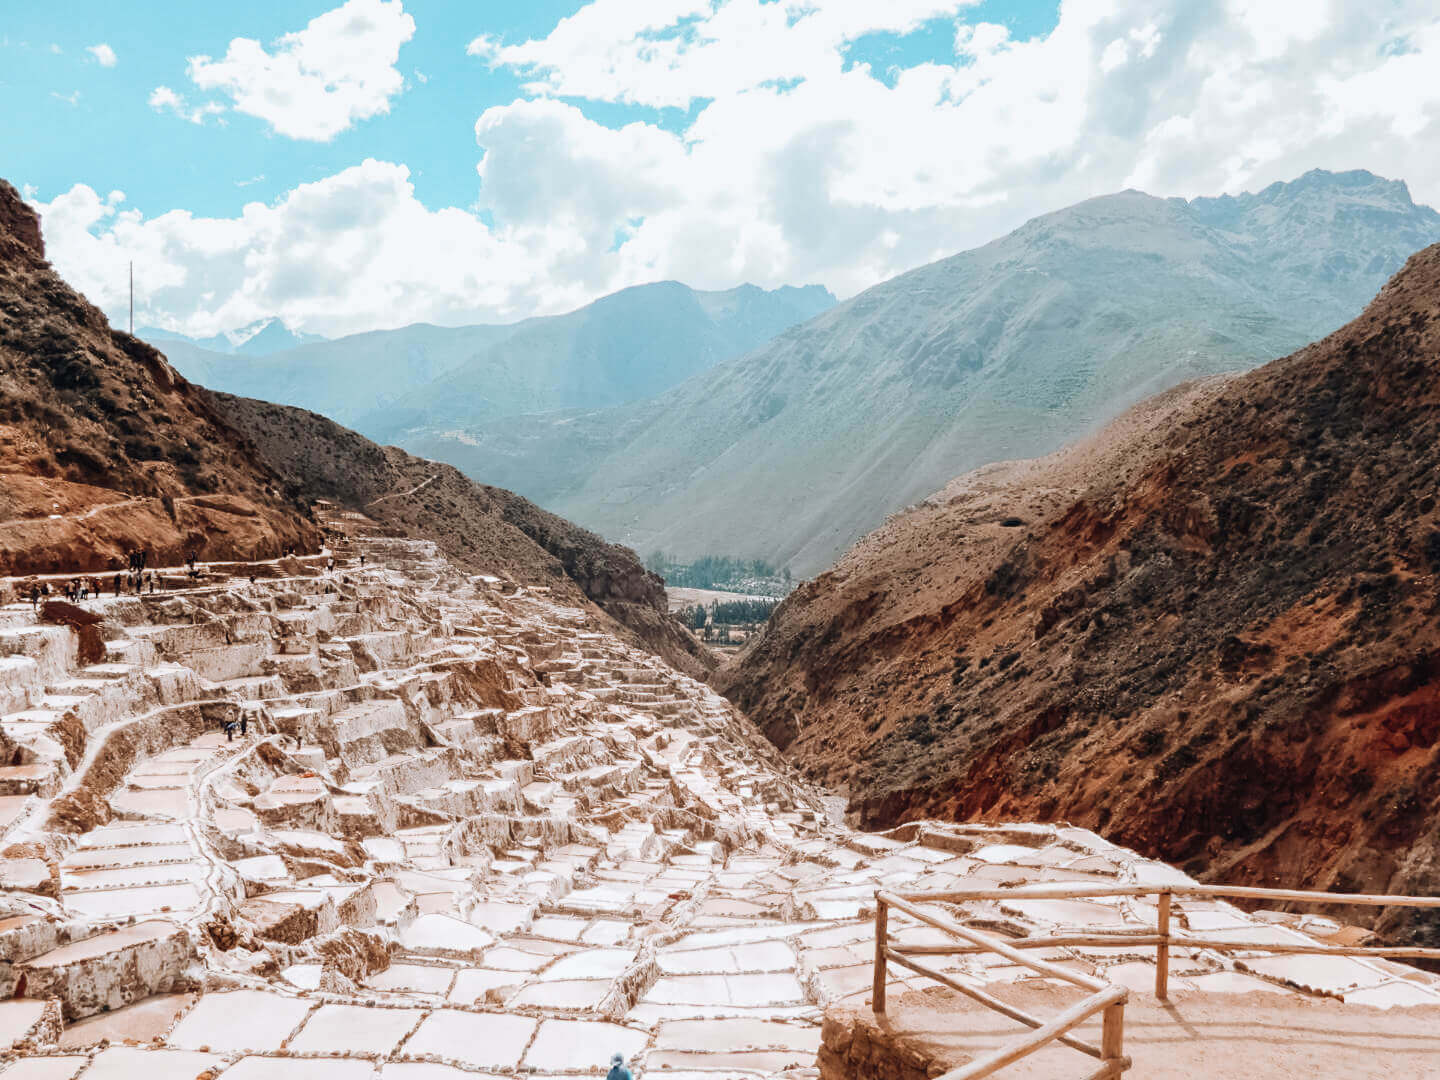 Maras Salt Mines at varying levels in Sacred Valley, Peru